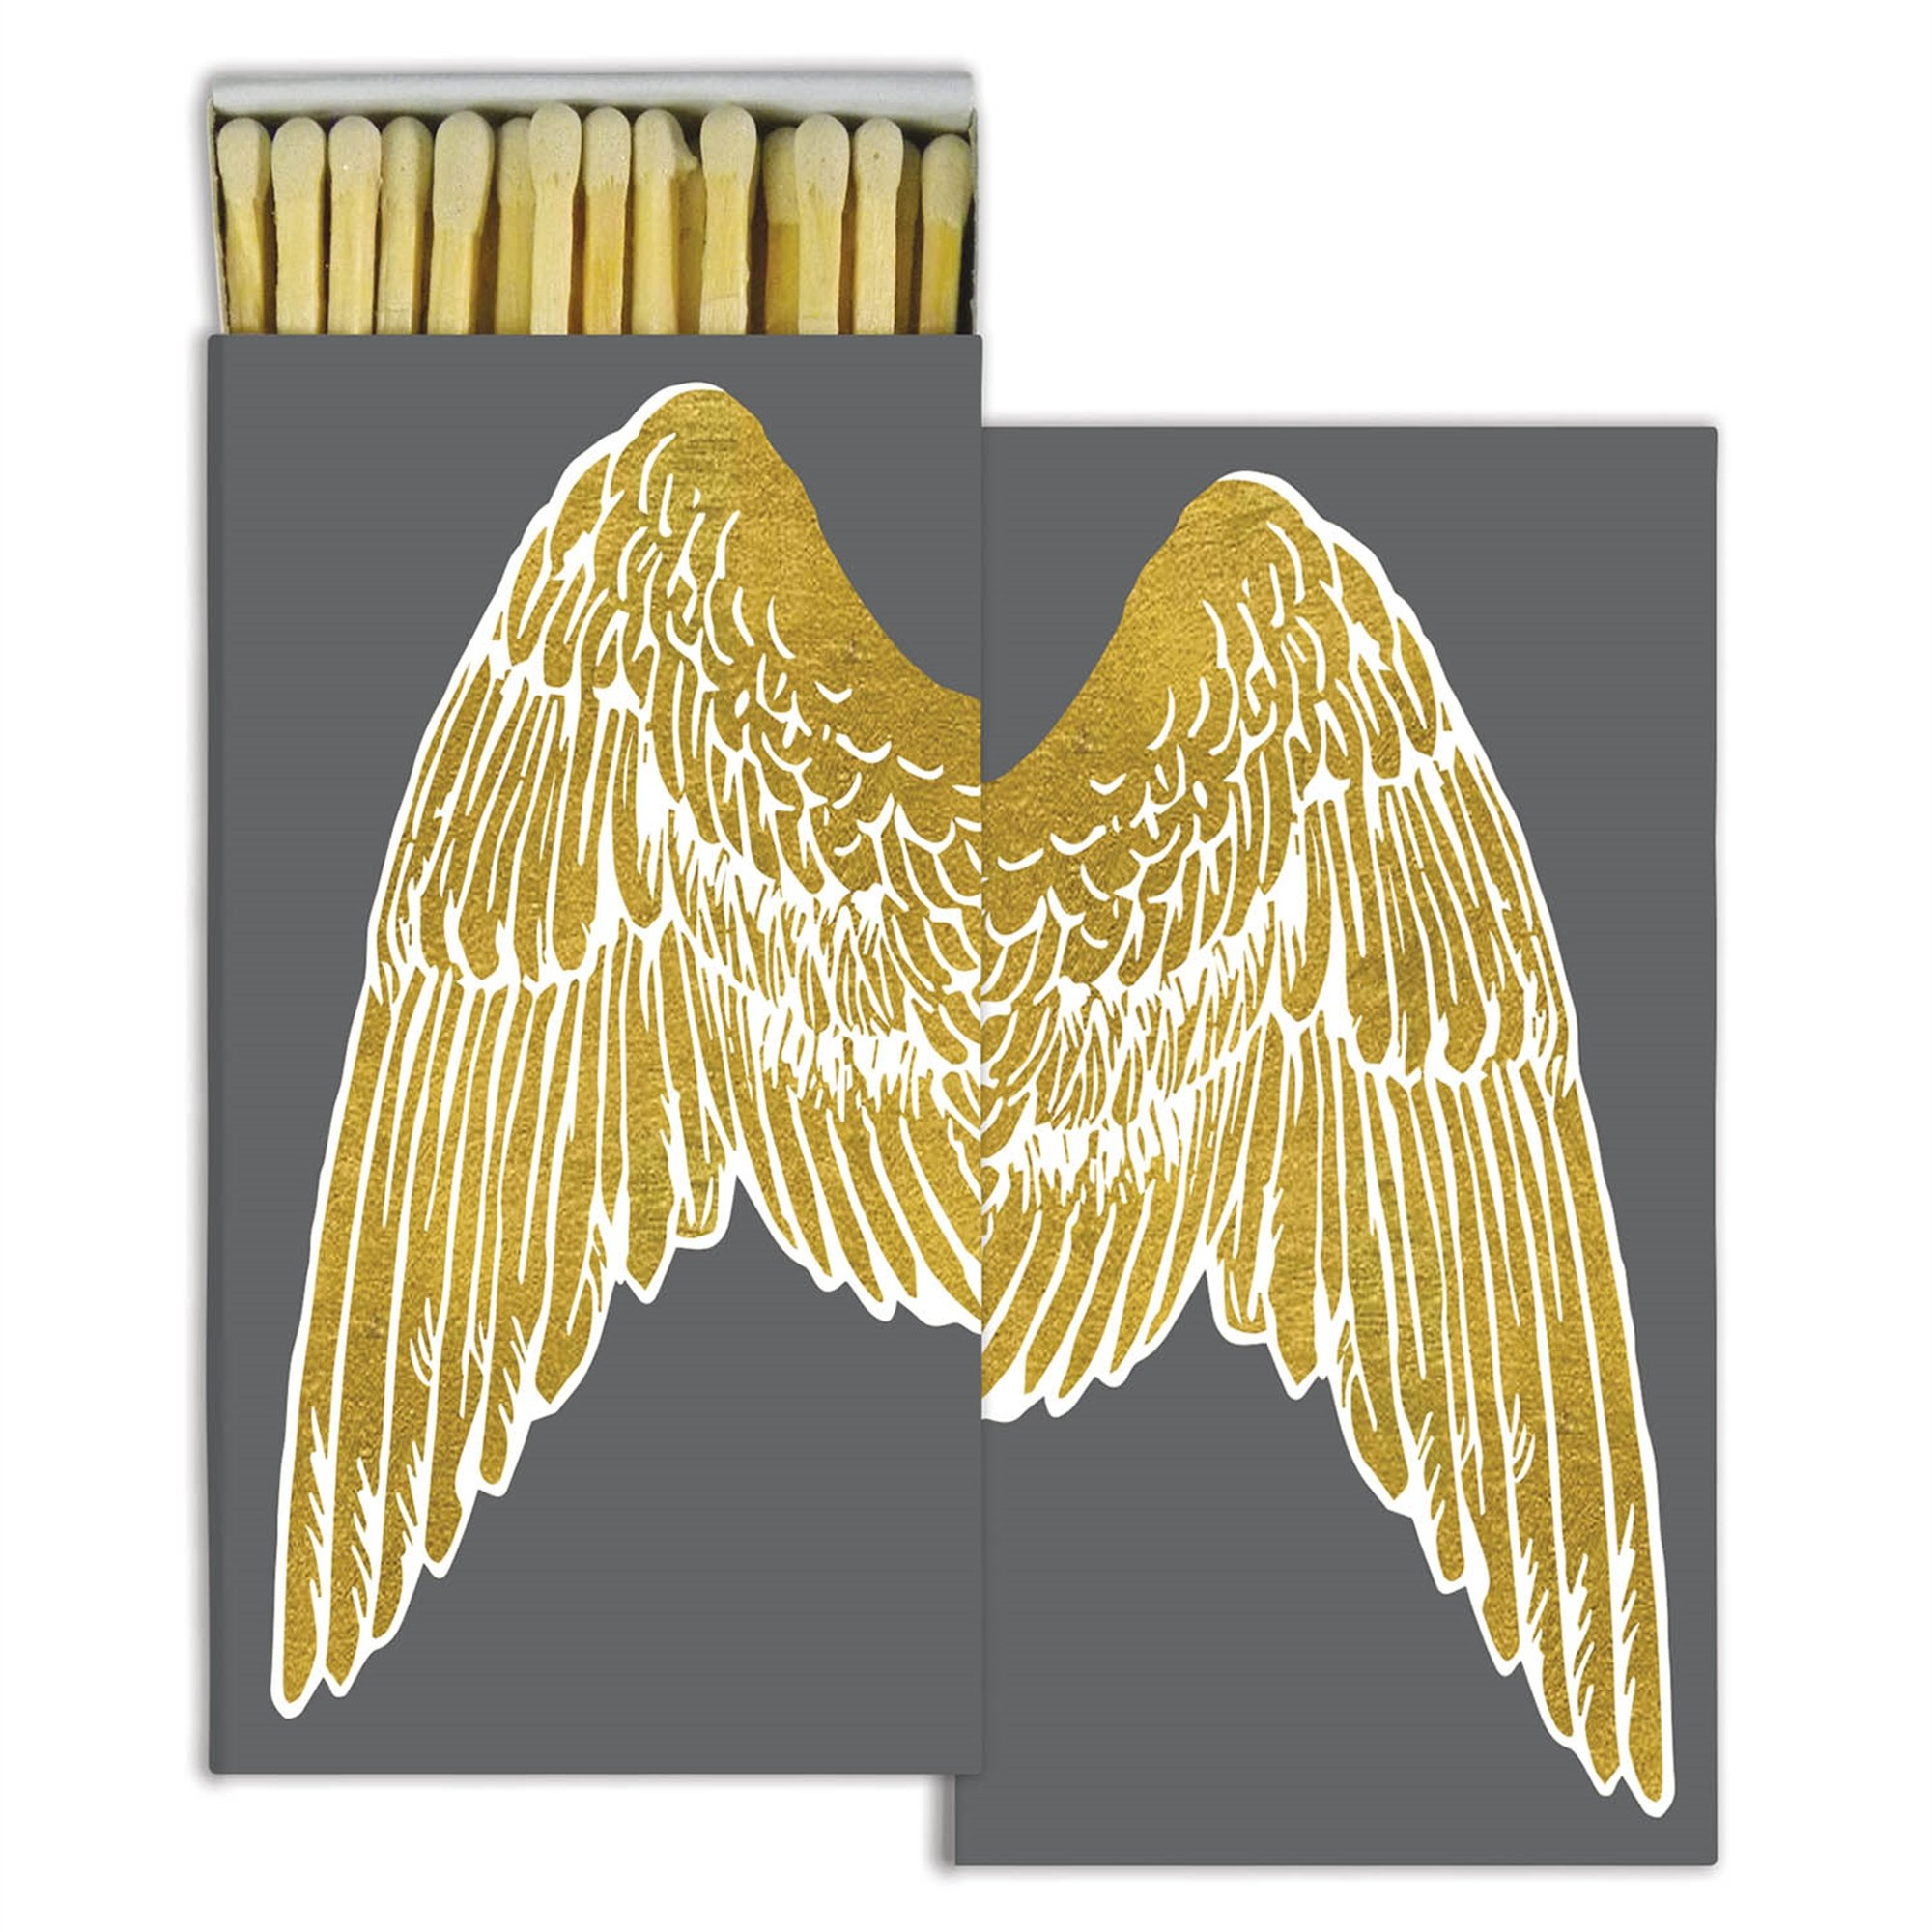 Gold Foil Wings Decorative Match Boxes with Wooden Matches (Set of 10)